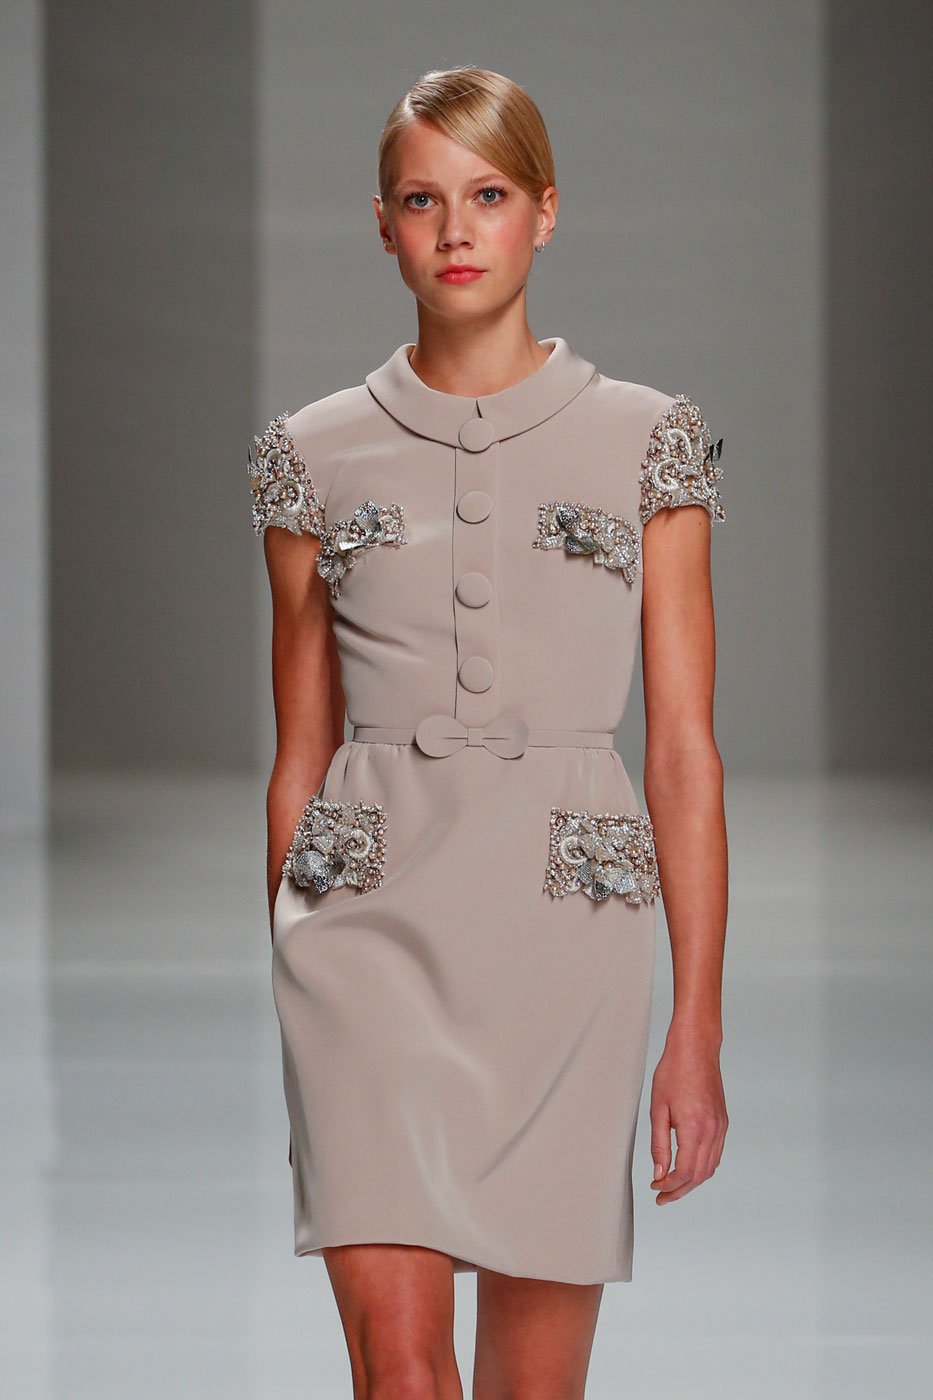 Georges-Hobeika-fashion-runway-show-haute-couture-paris-spring-2015-the-impression-34